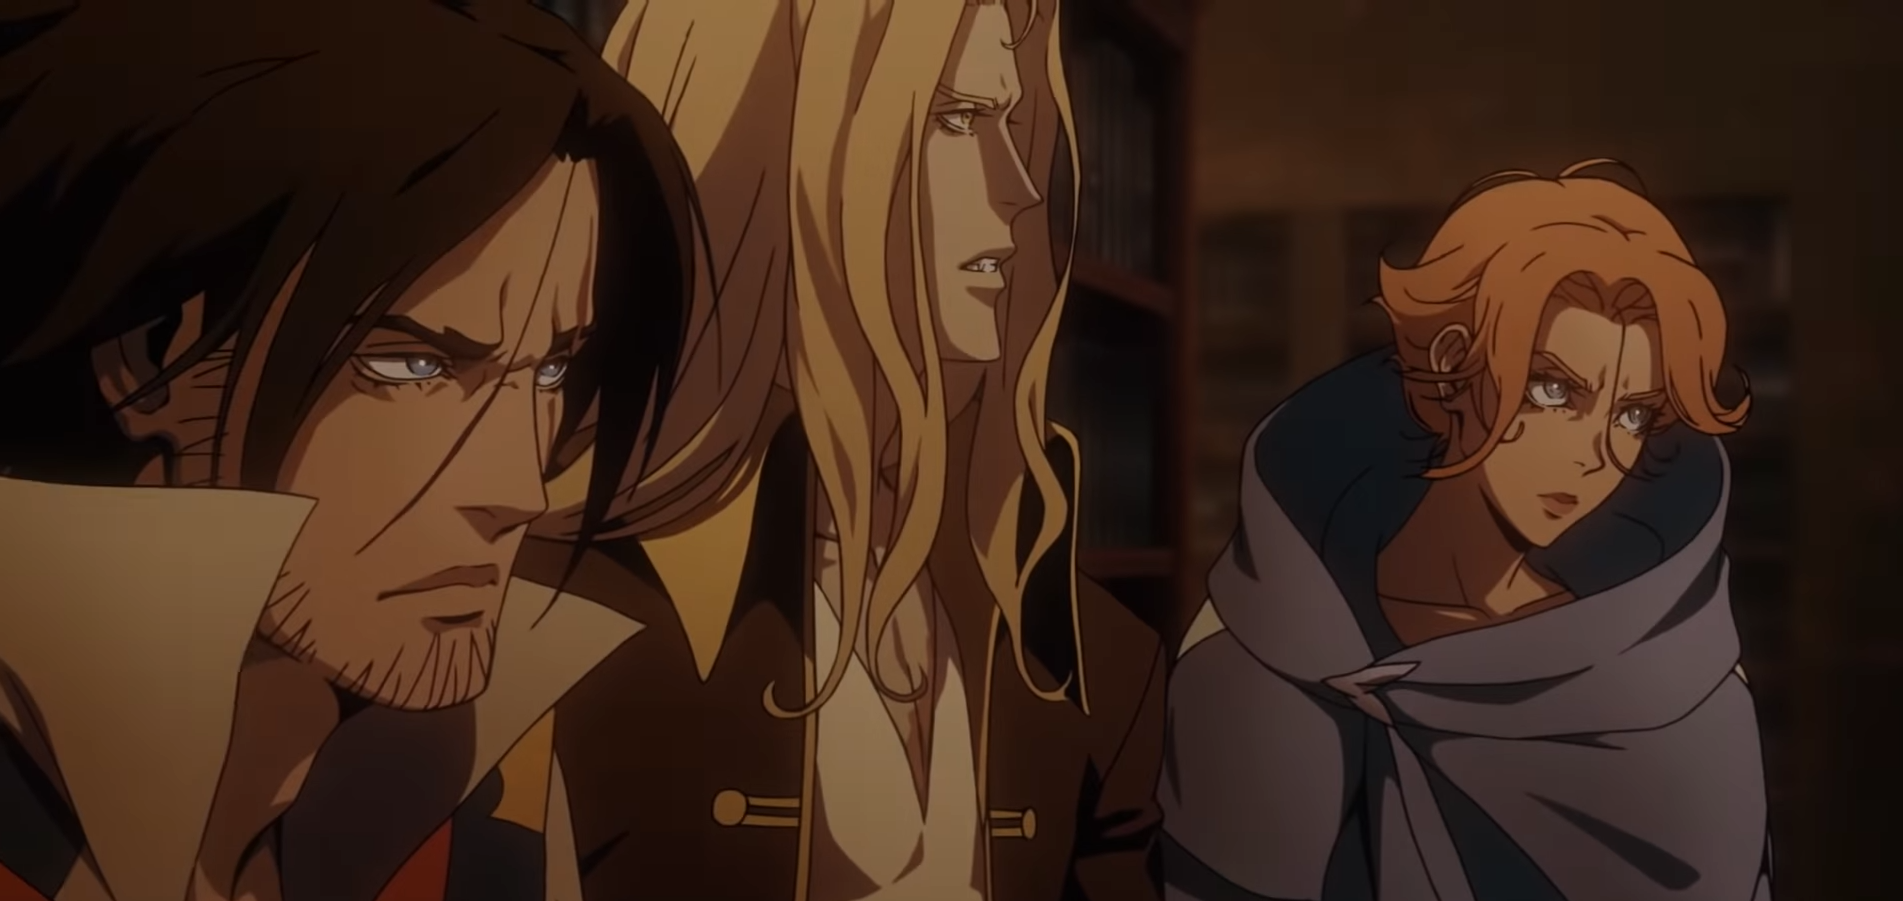 'Castlevania' Will Come to an End with Season Four, Though Netflix is Exploring a Spin-Off